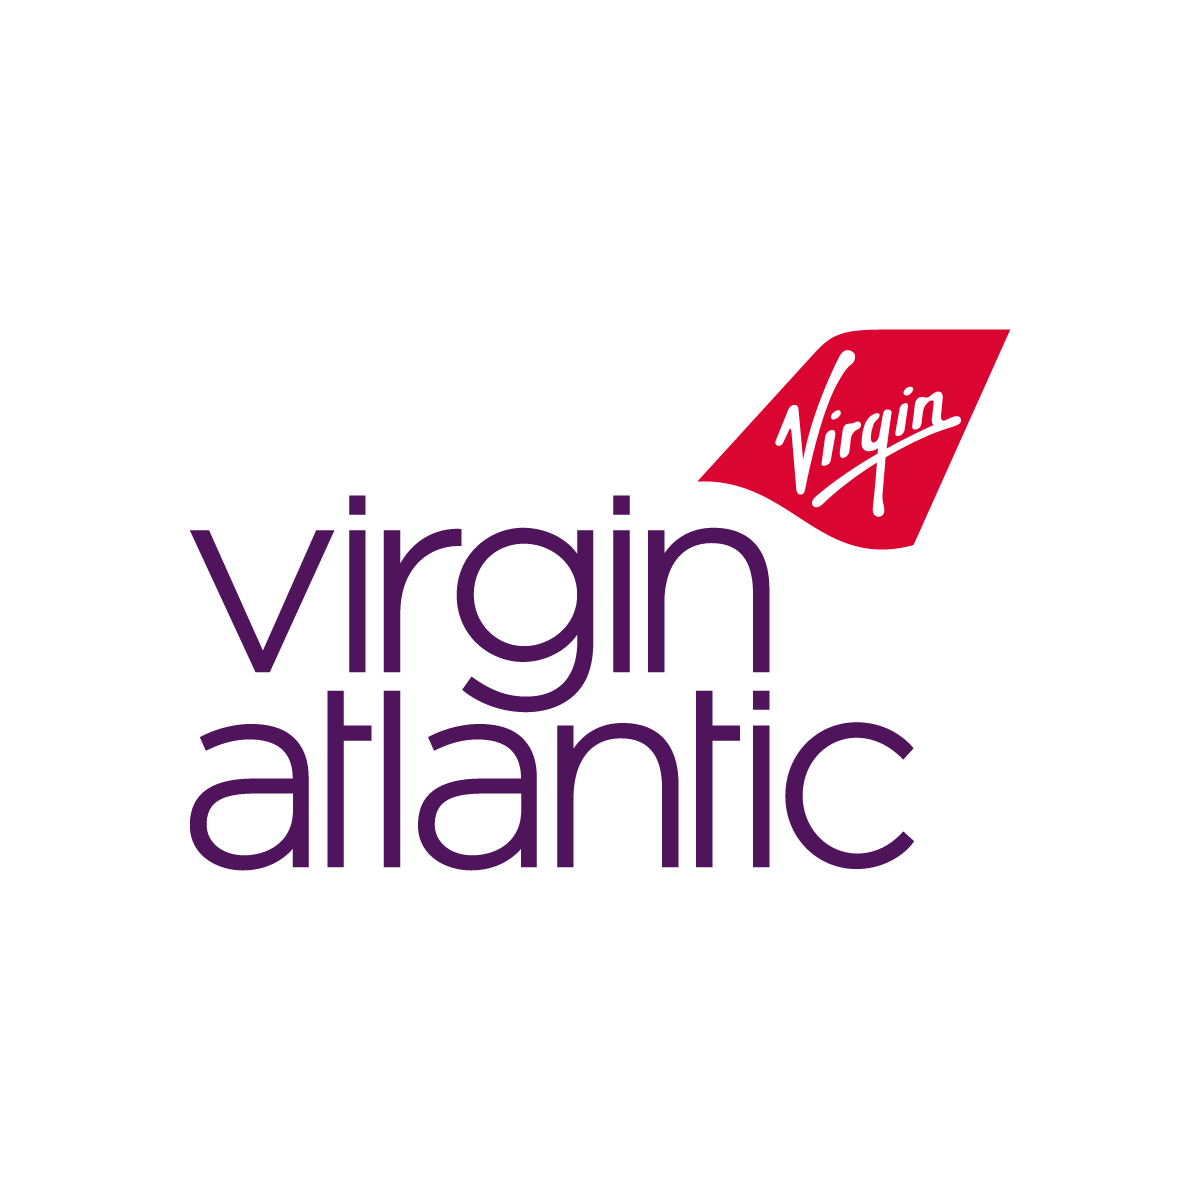 The Virgin Atlantic logo